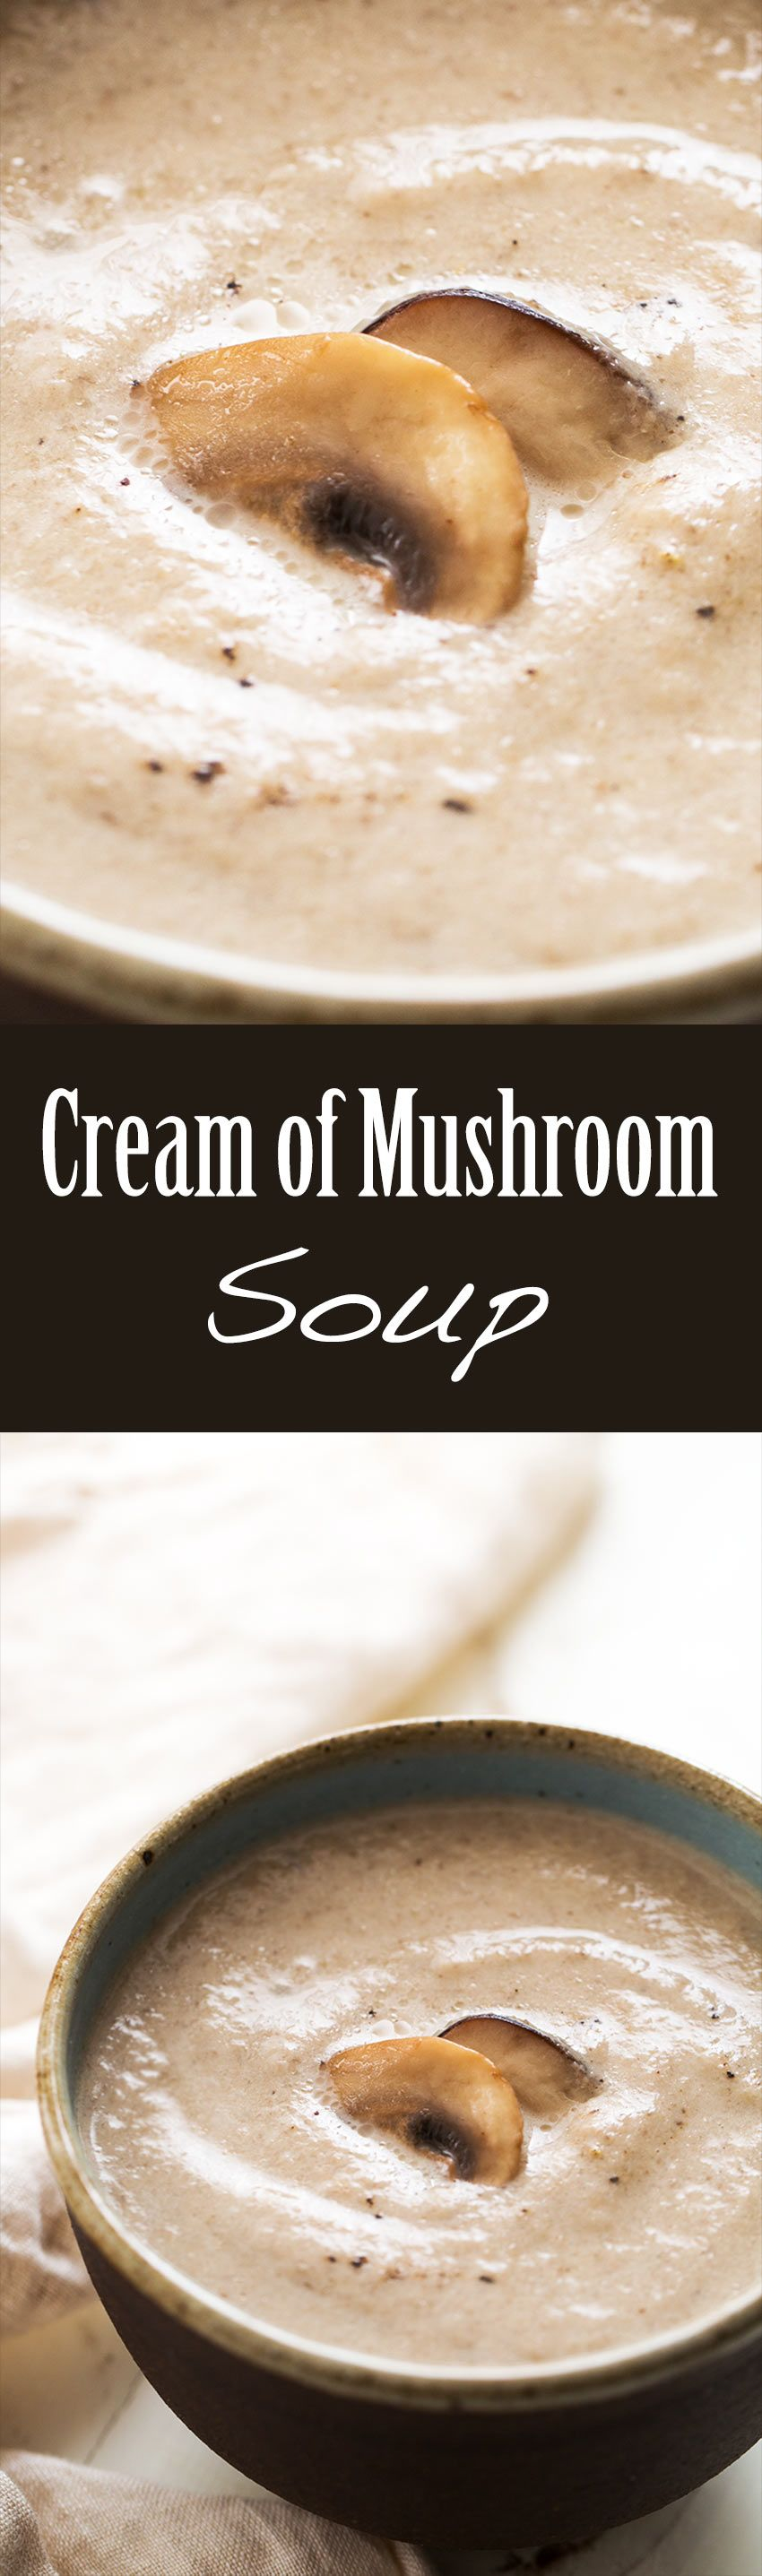 Best Homemade Cream Of Mushroom Soup So Creamy But With Half The Cream Of